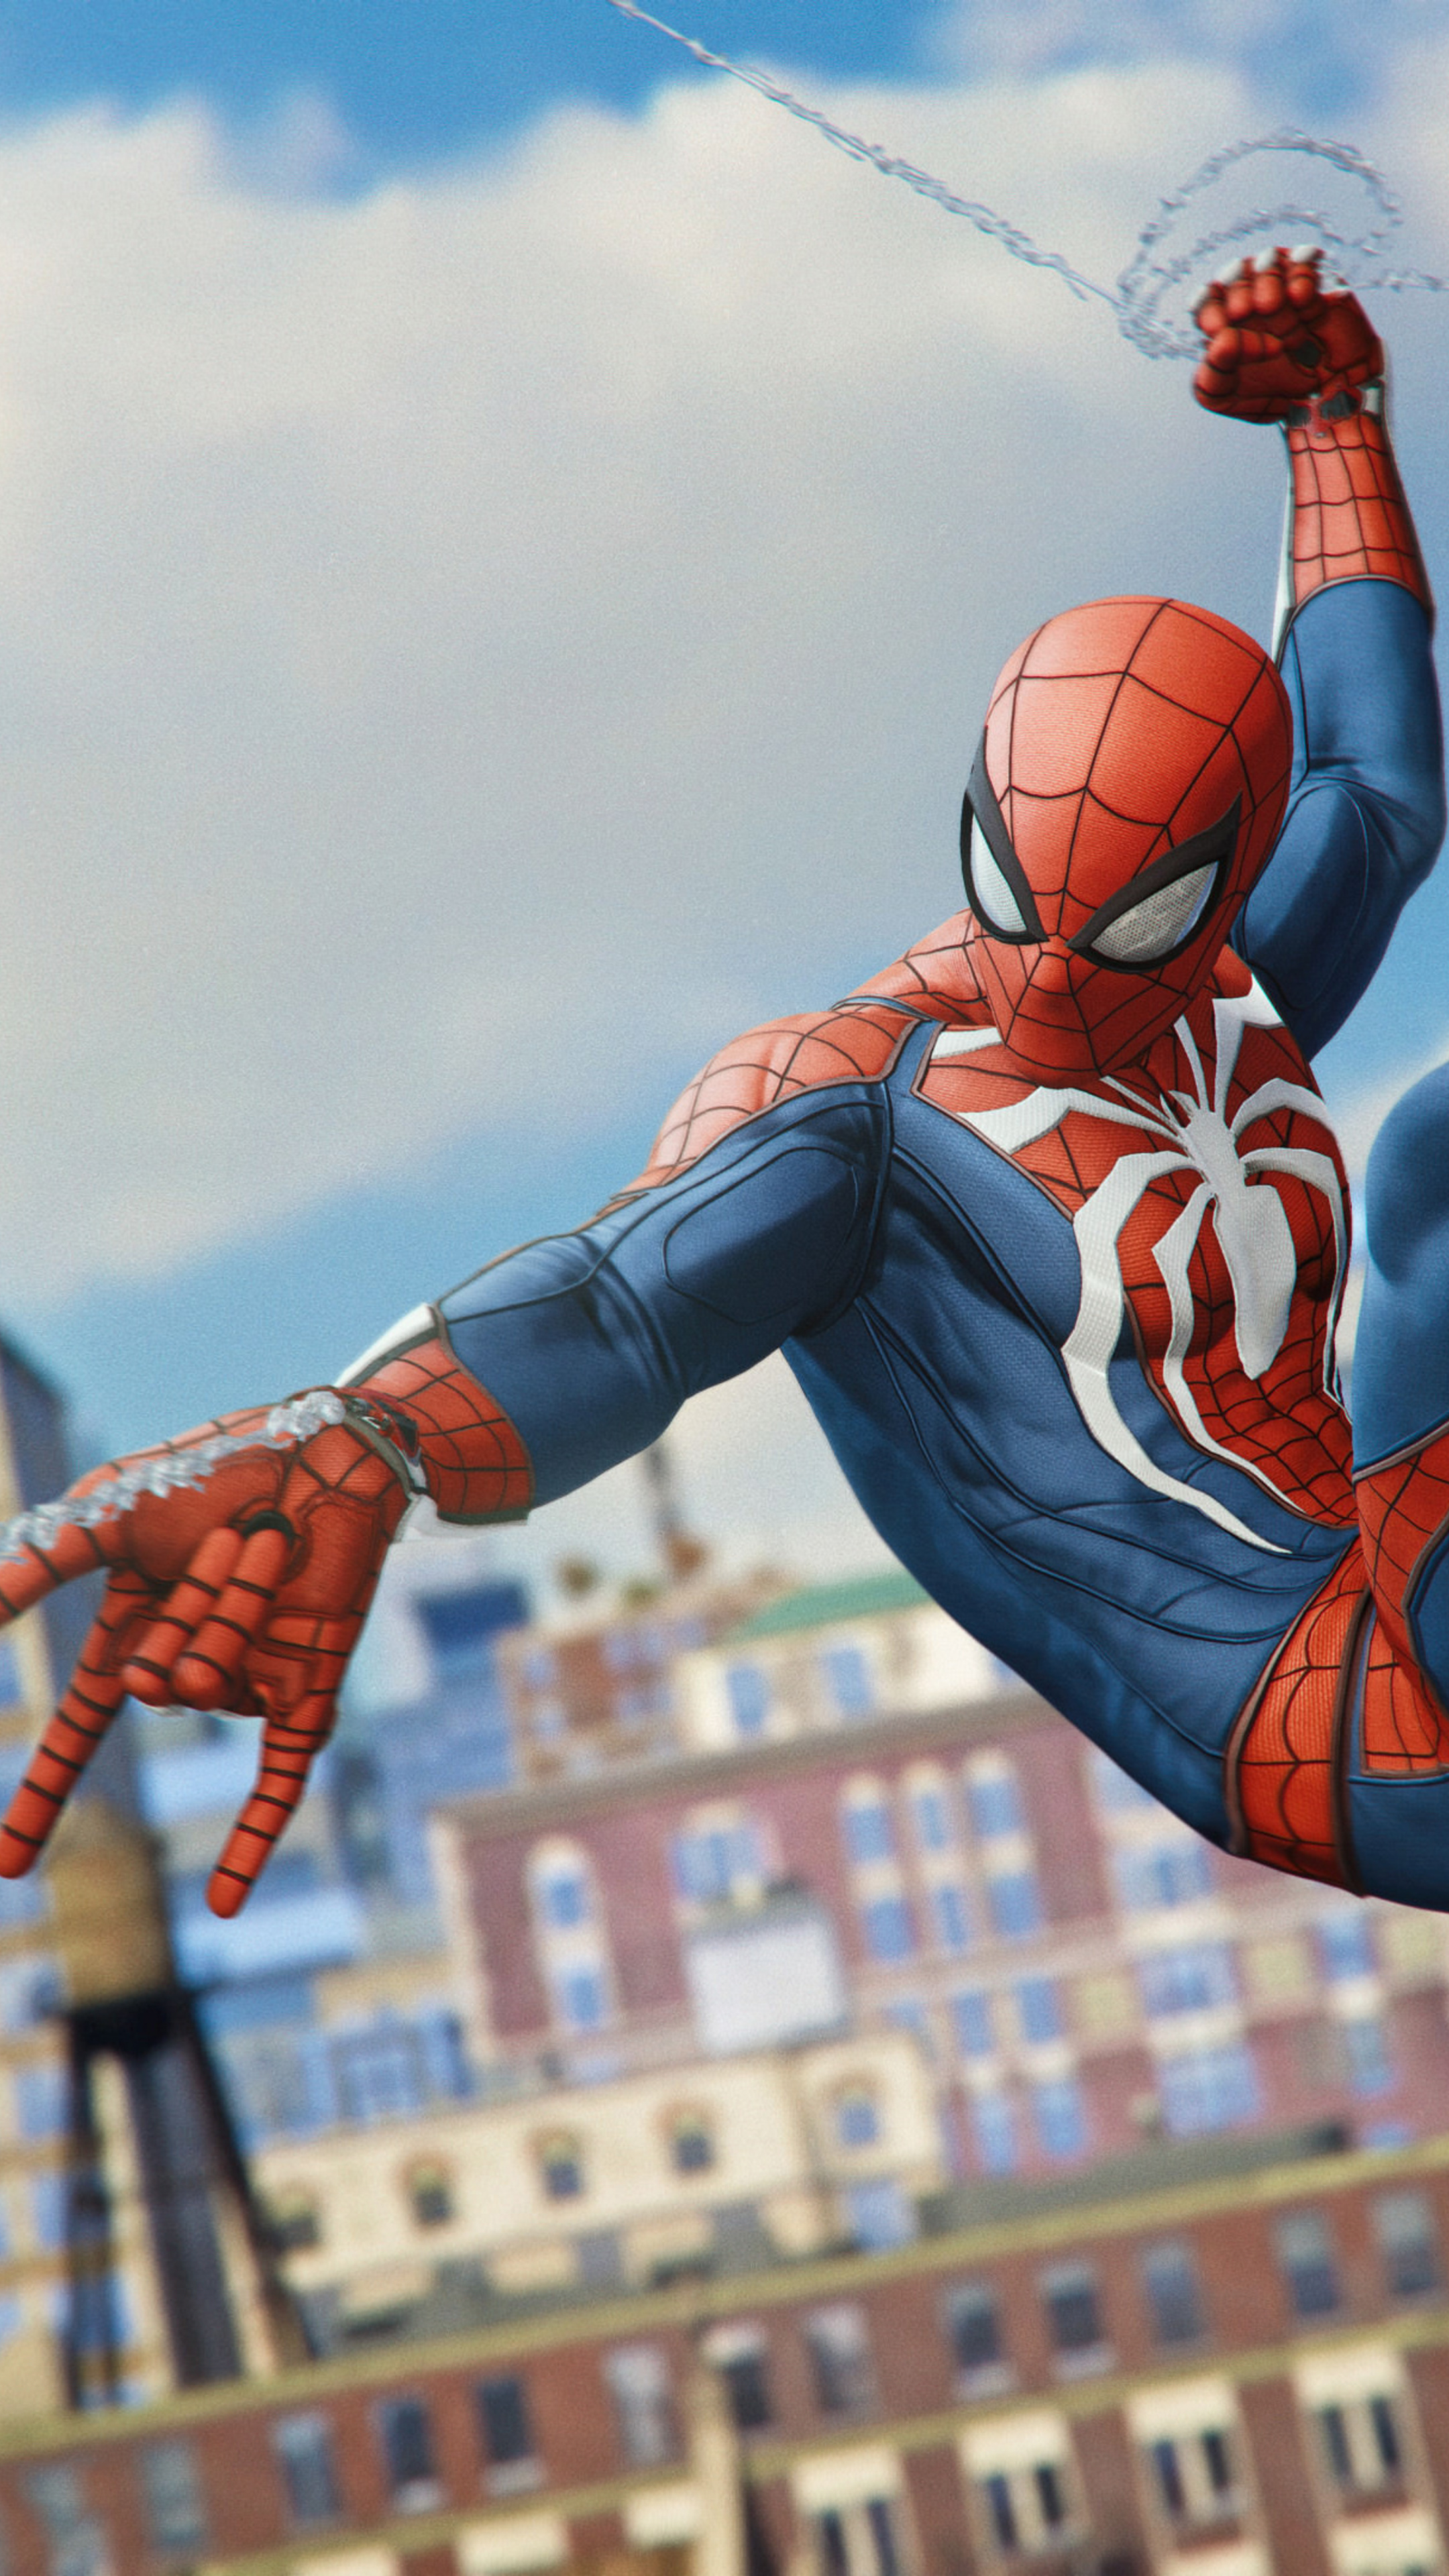 Spider man ps4 android apk